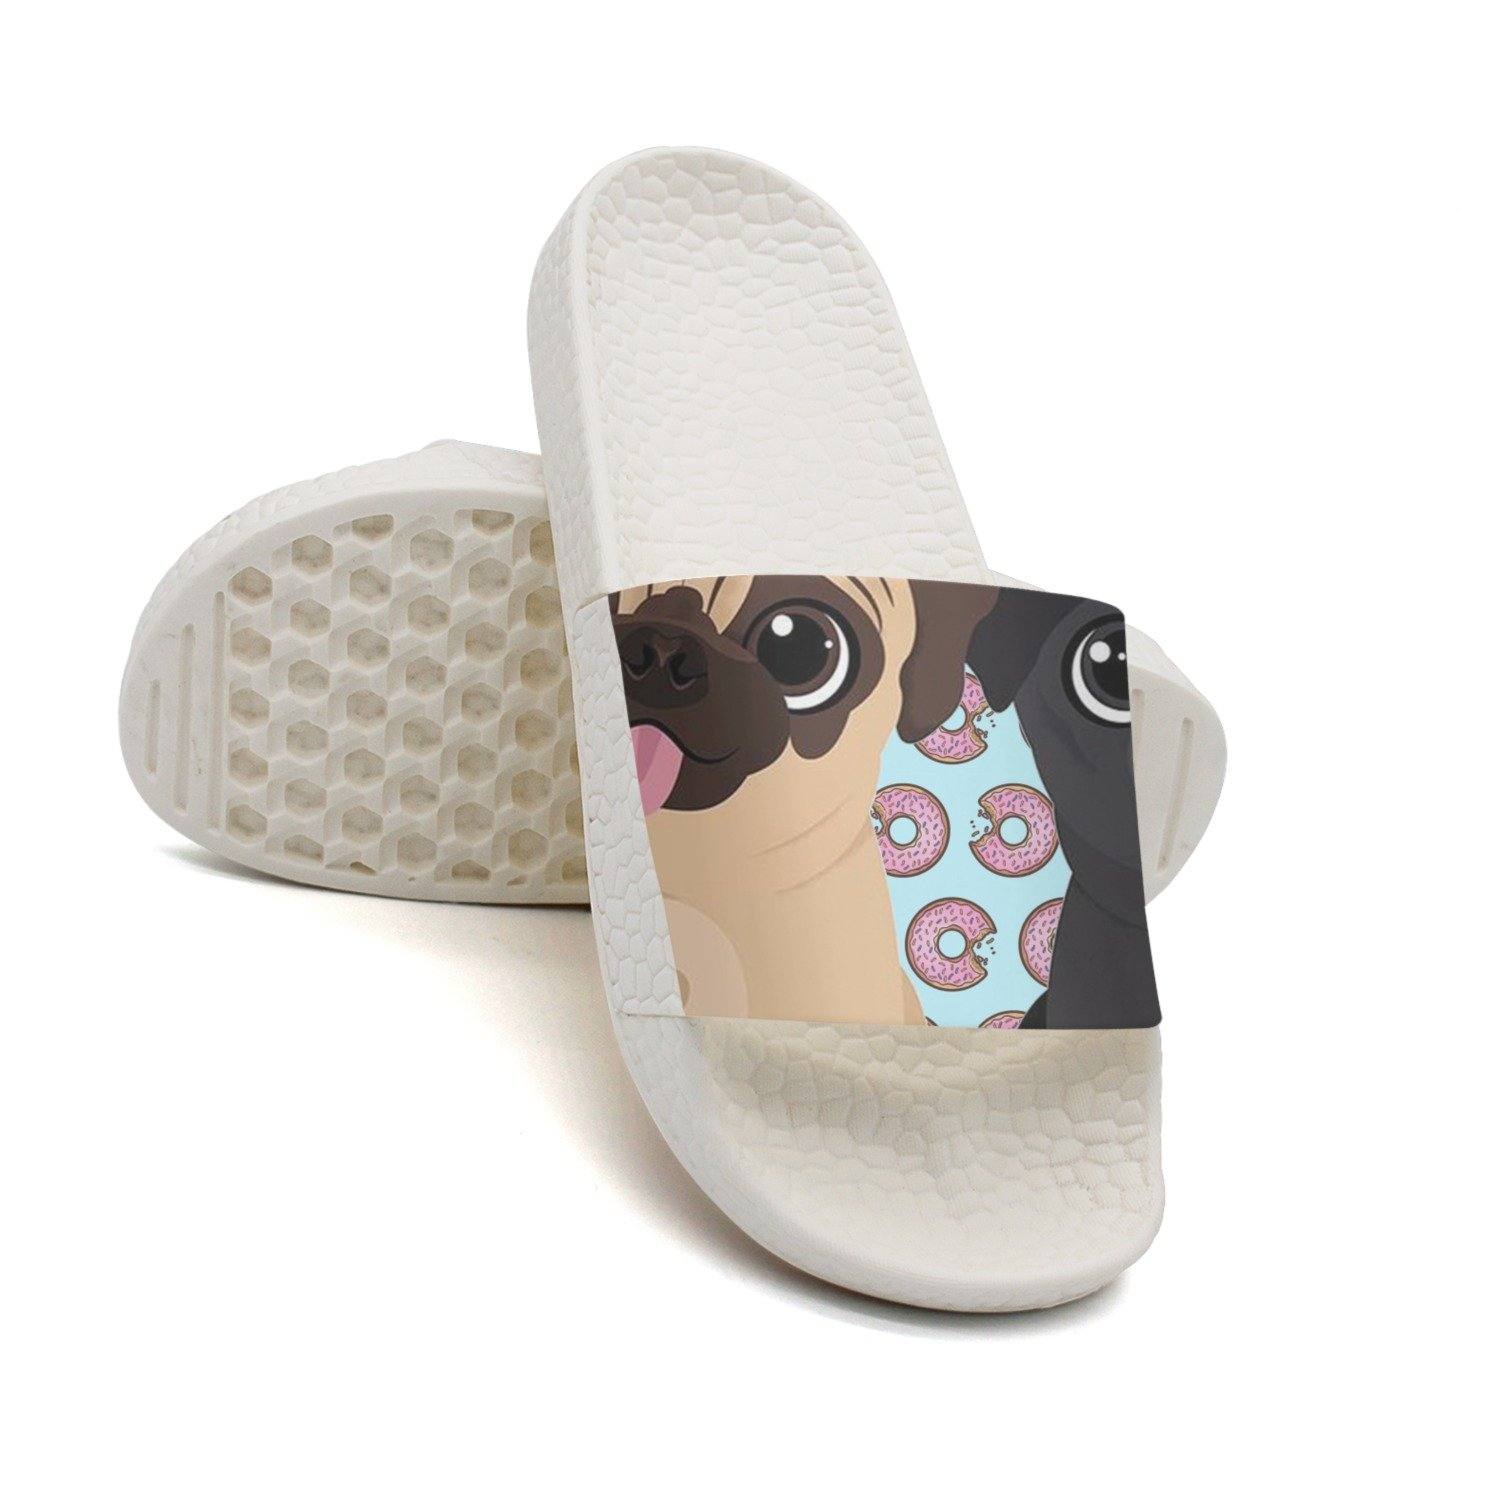 HSJDAPOCOAQ Two Cute Pug Dog Biscuits Summer Slippers For Men